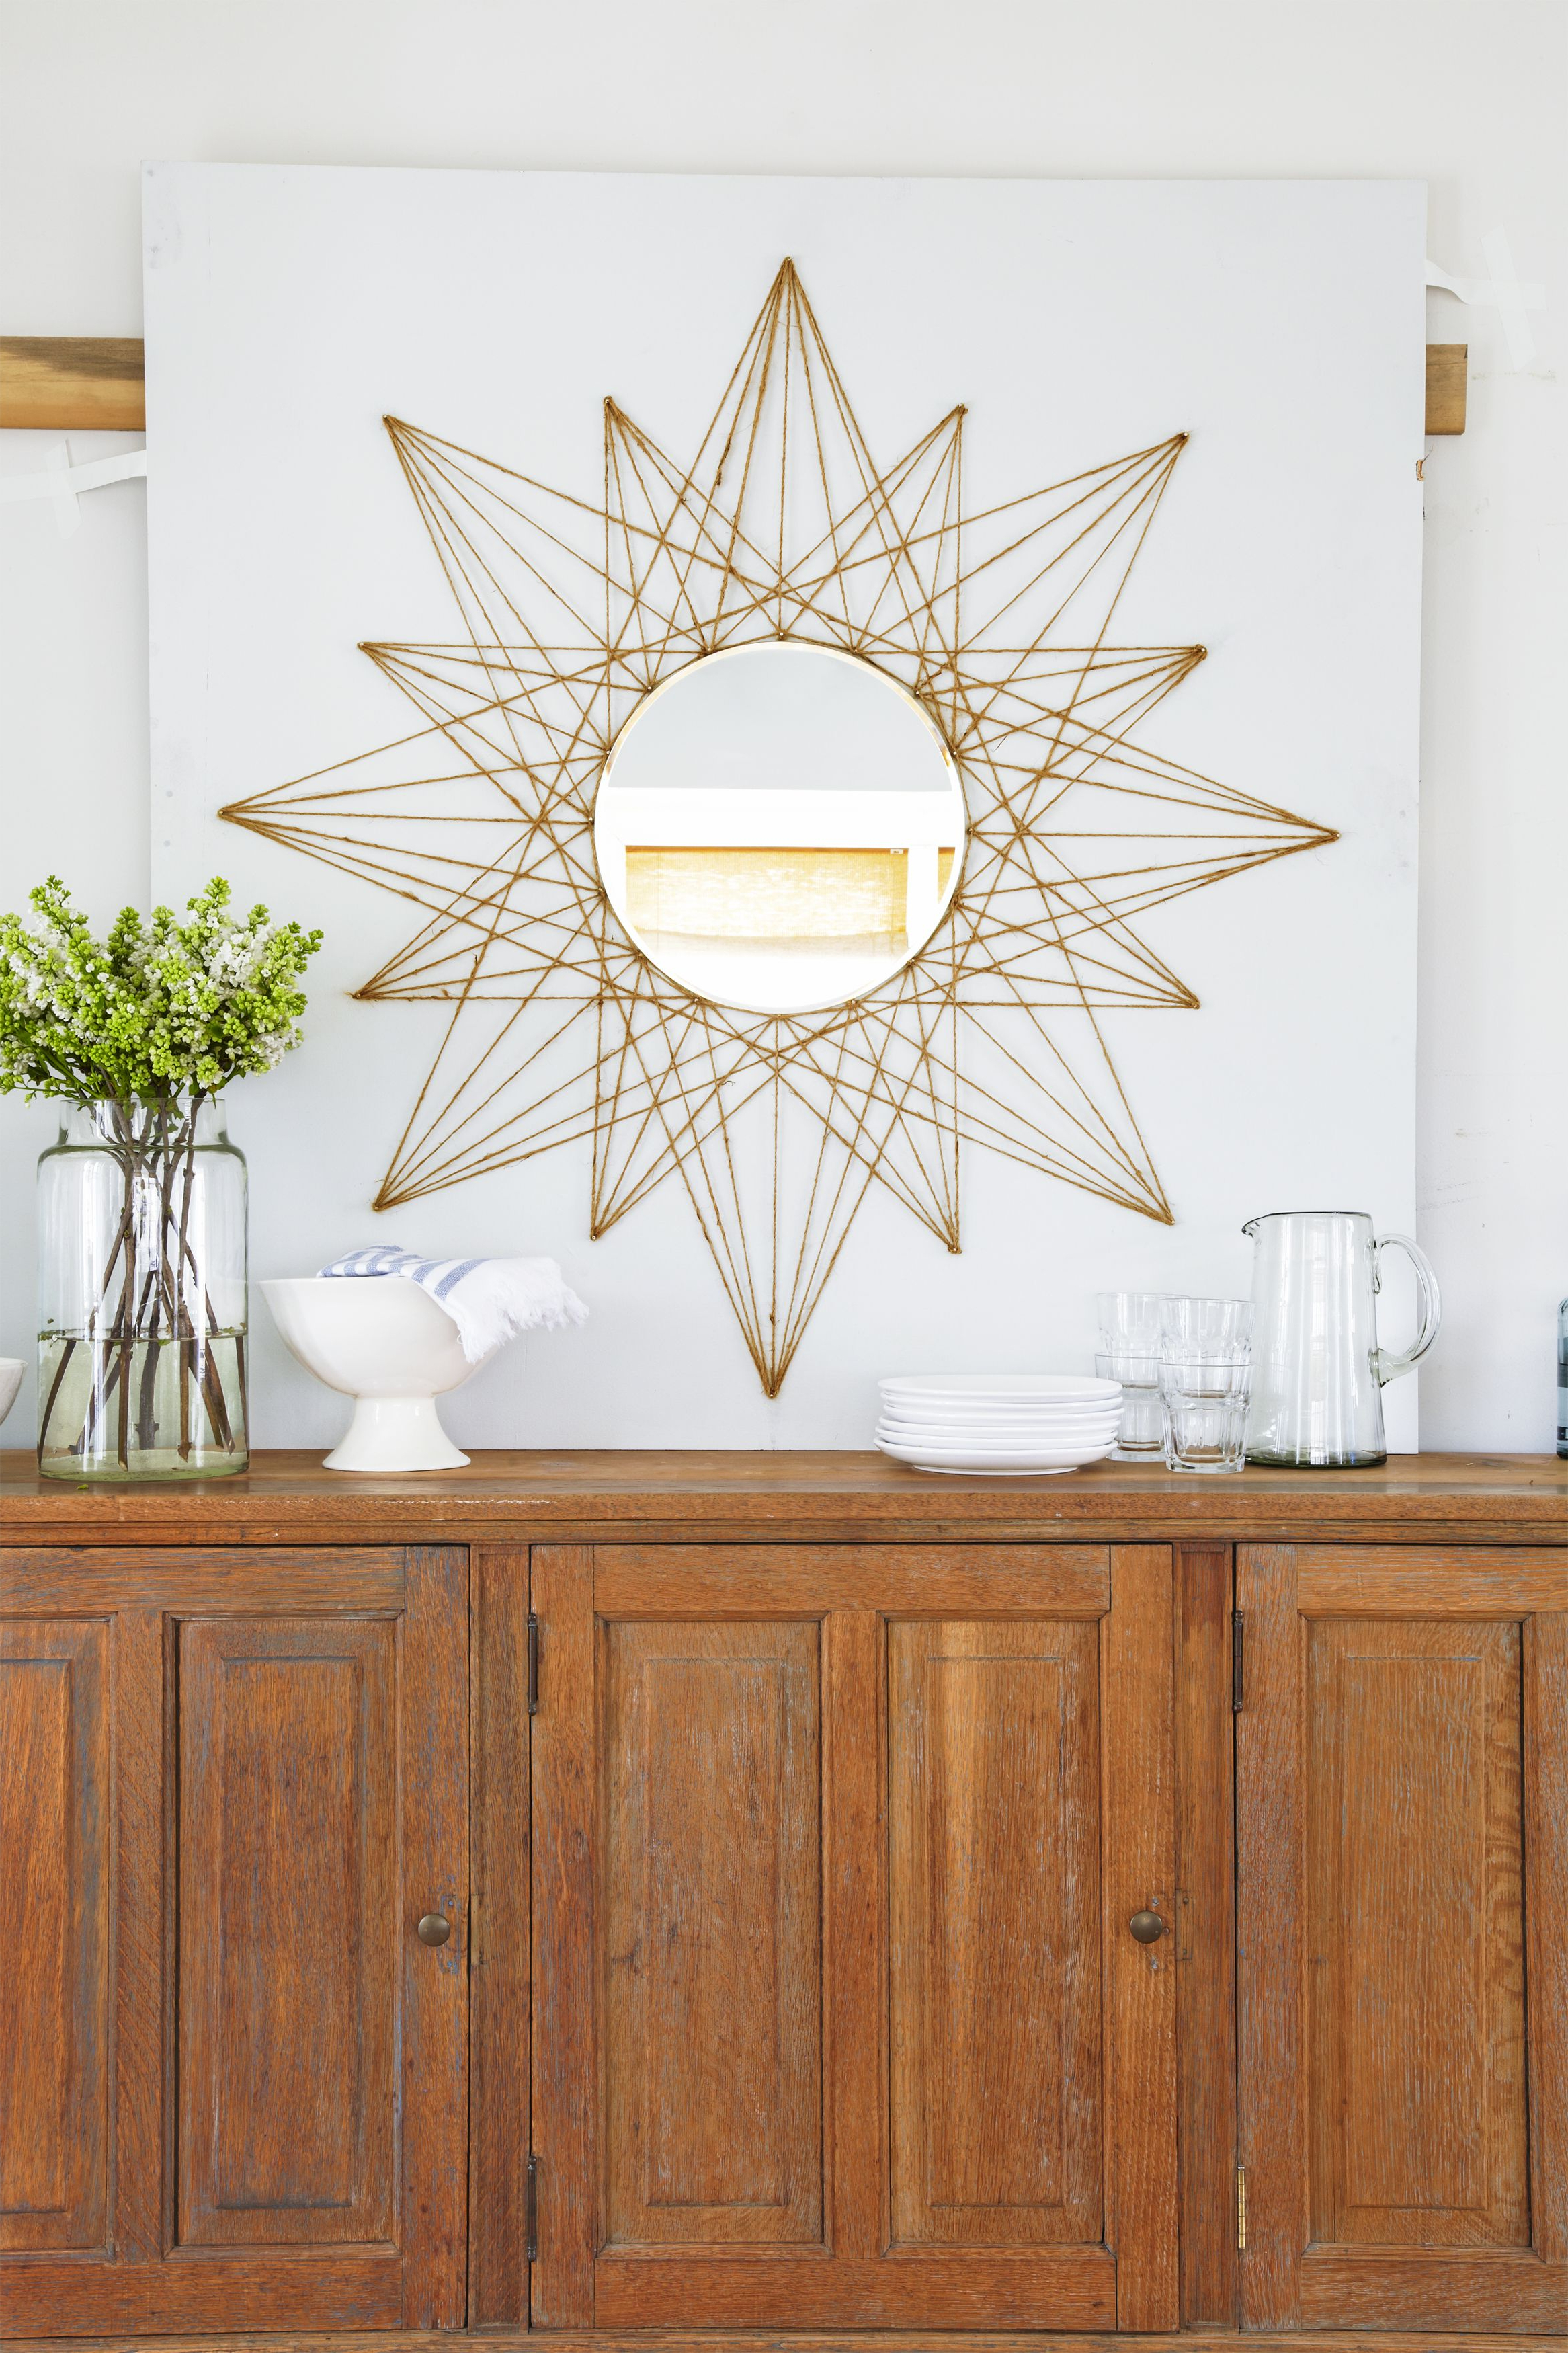 This Simple Mirror Diy Will Upgrade Any Boring Wall In Your Home In Well Known Diy Wall Mirrors (View 6 of 20)